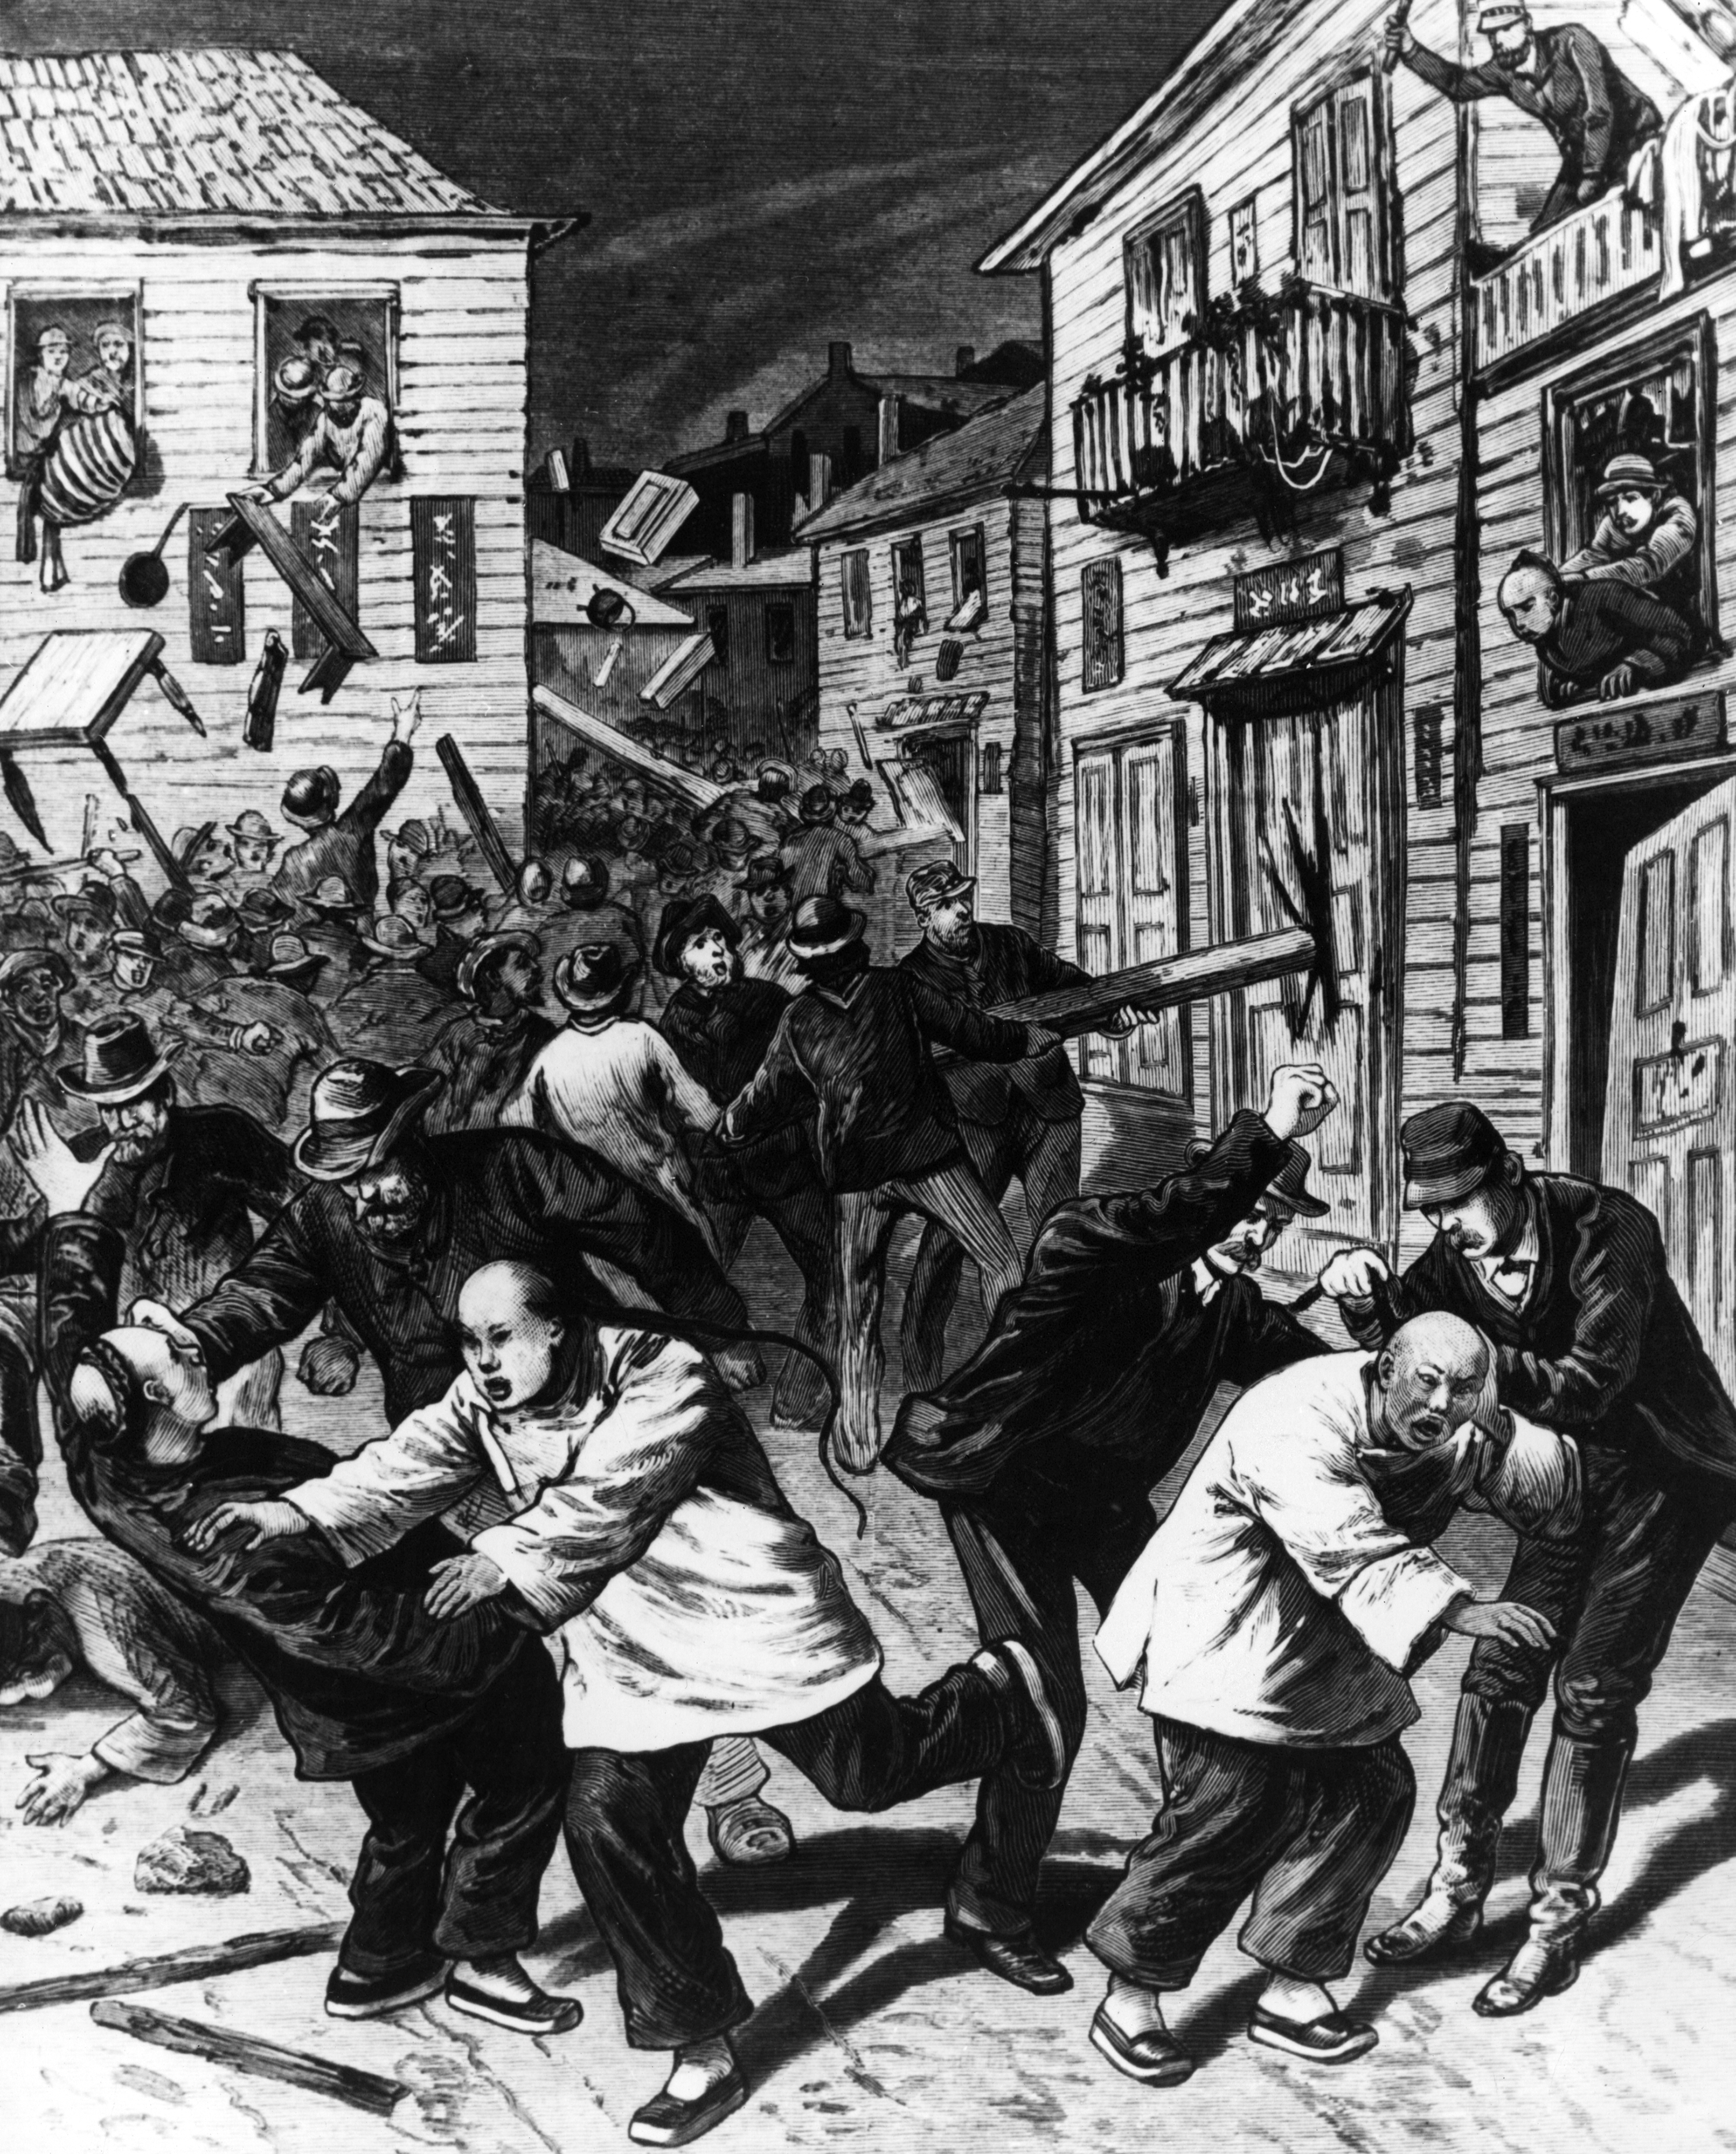 1880 illustration of anti-chinese riot in Denver